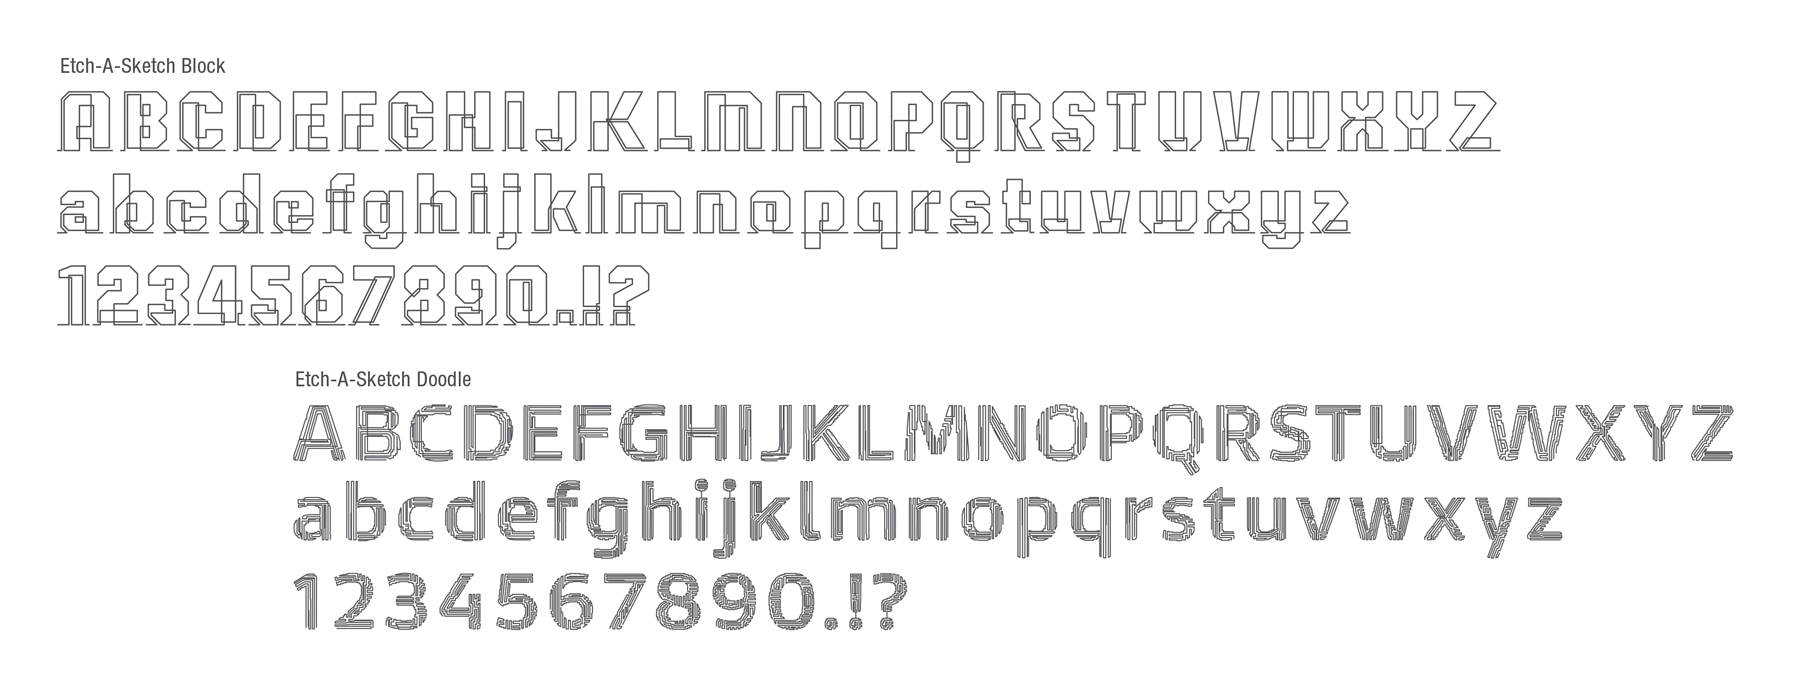 Etch-A-Sketch Style Guide Design - Panel 4